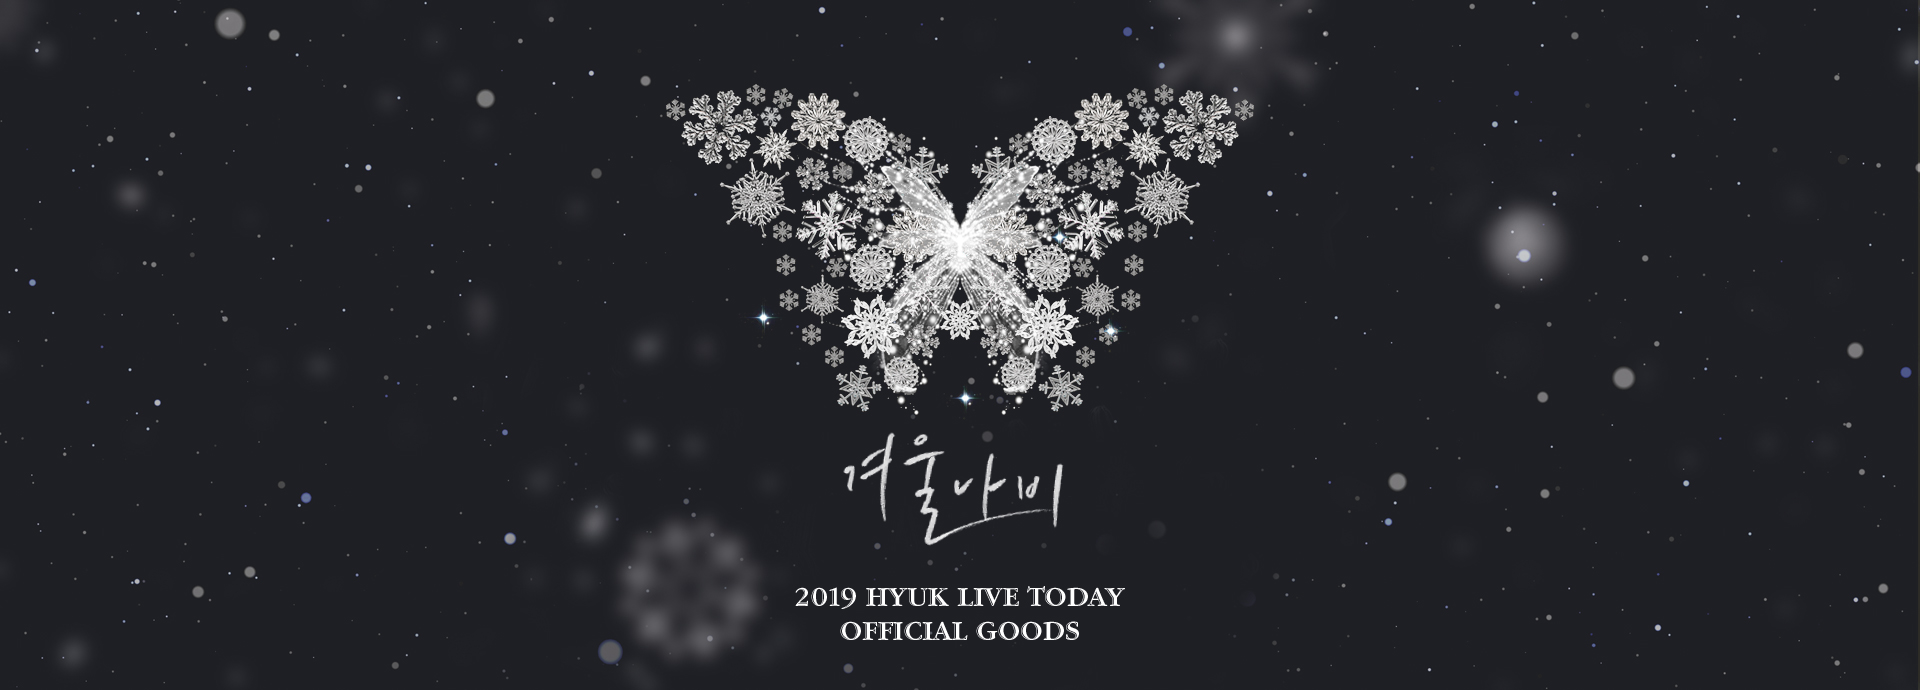 vixx officialgoods